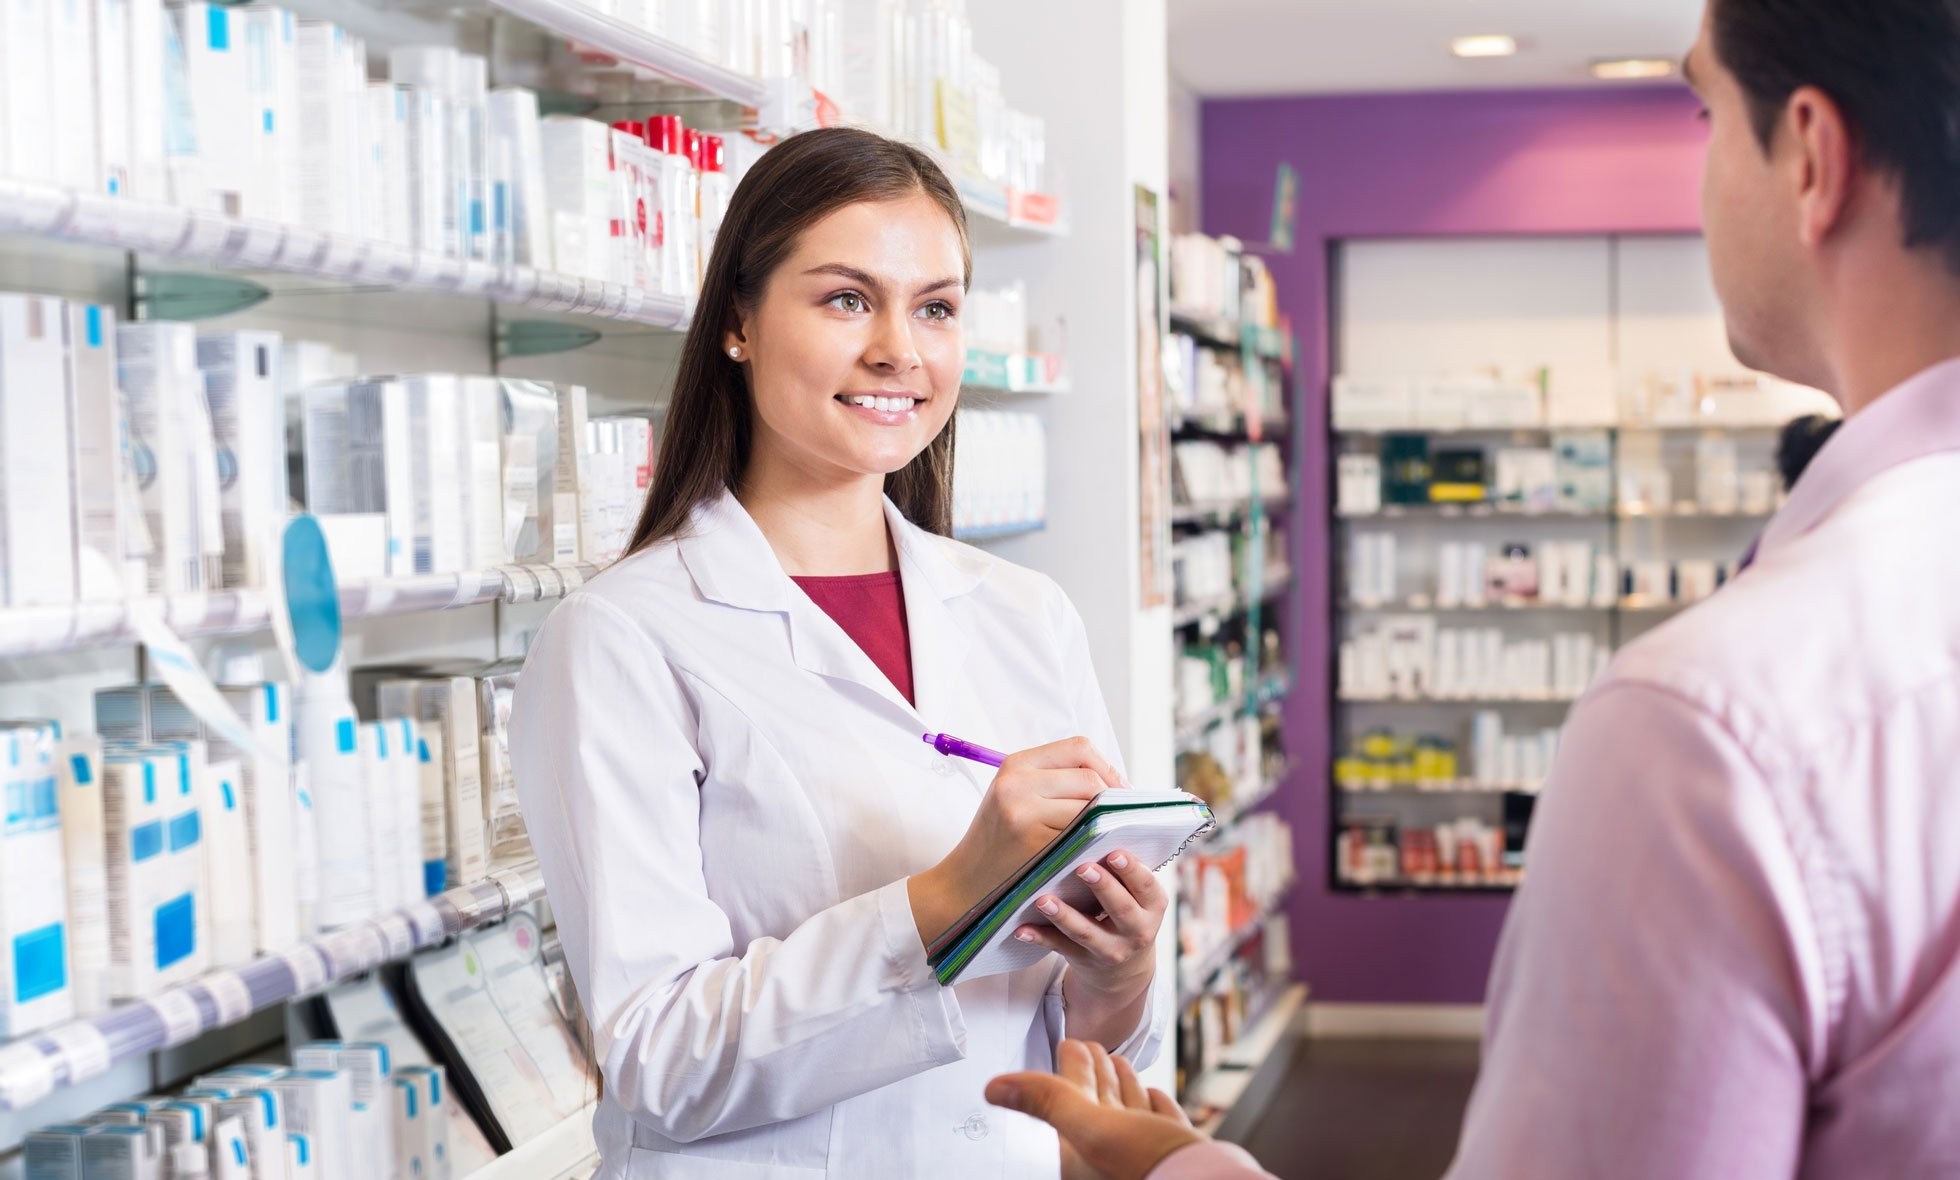 the importance of a pharmacist in the An important situation in which having a pharmacist you can go to is when you might be sick if you're on specific medications, some over-the-counter drugs can interact unfavorably, but a pharmacist can help you pick a good alternative.